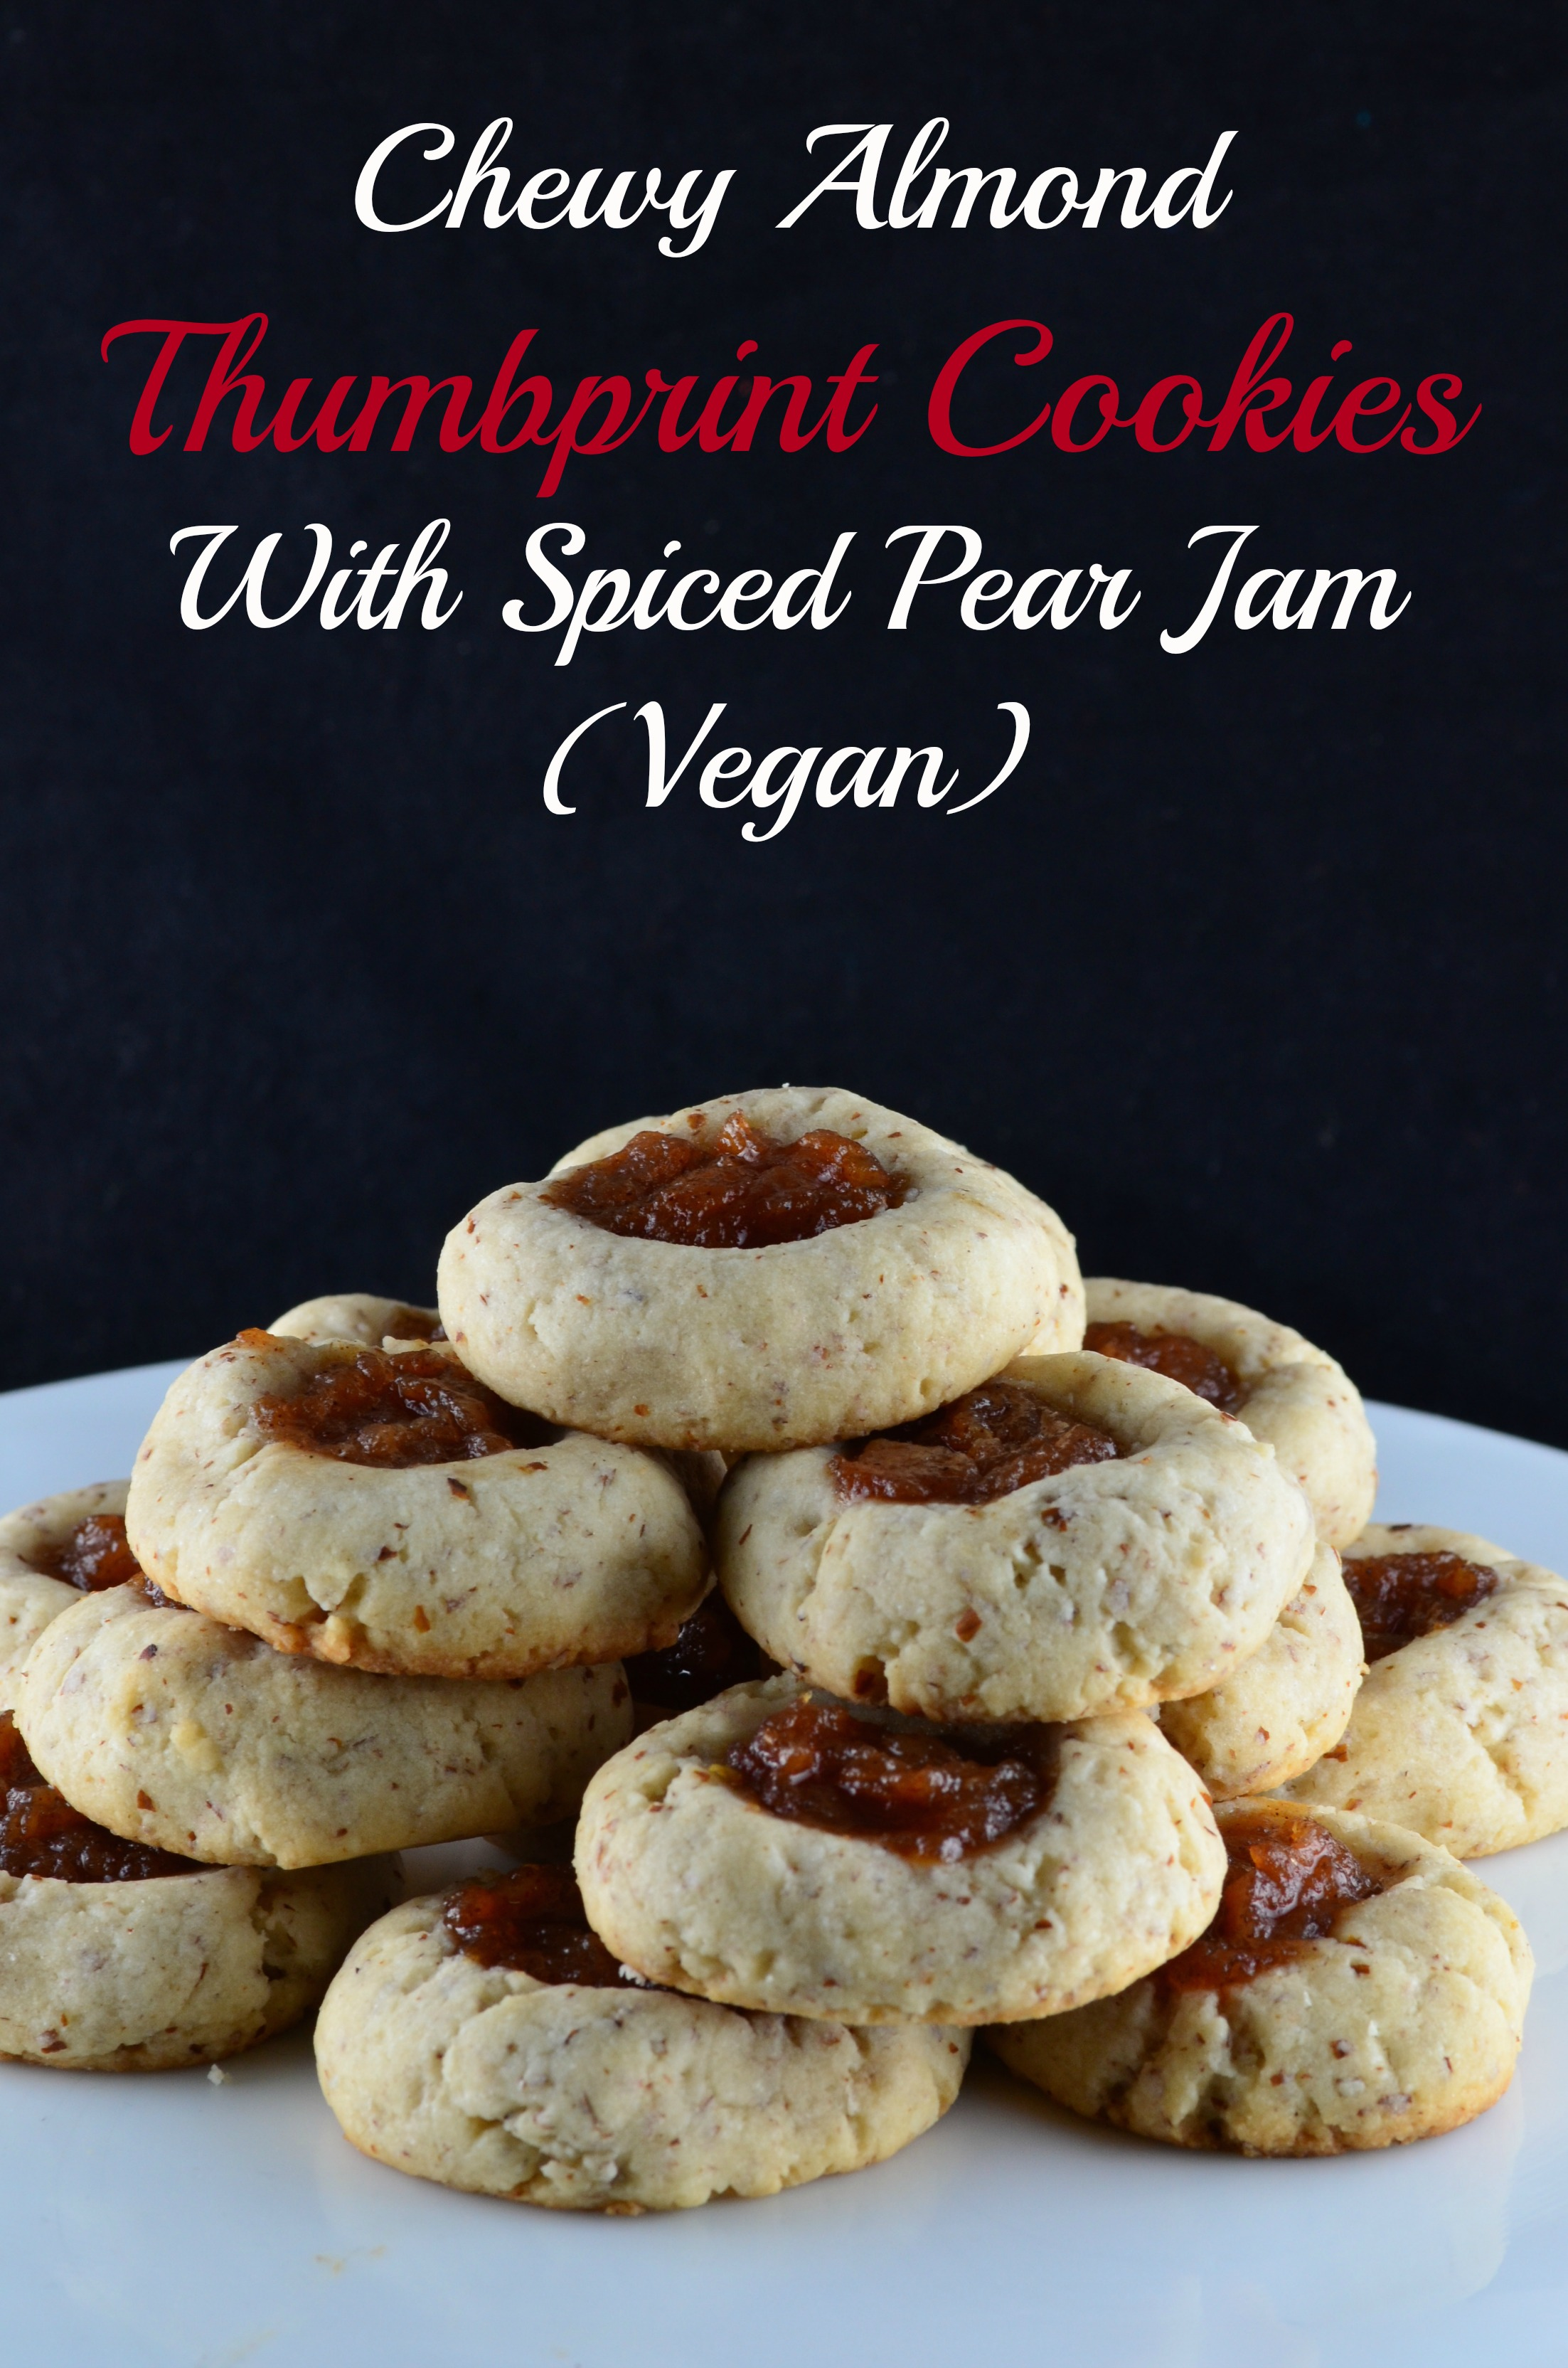 Almond Thumbprint Cookies with Pear Jam